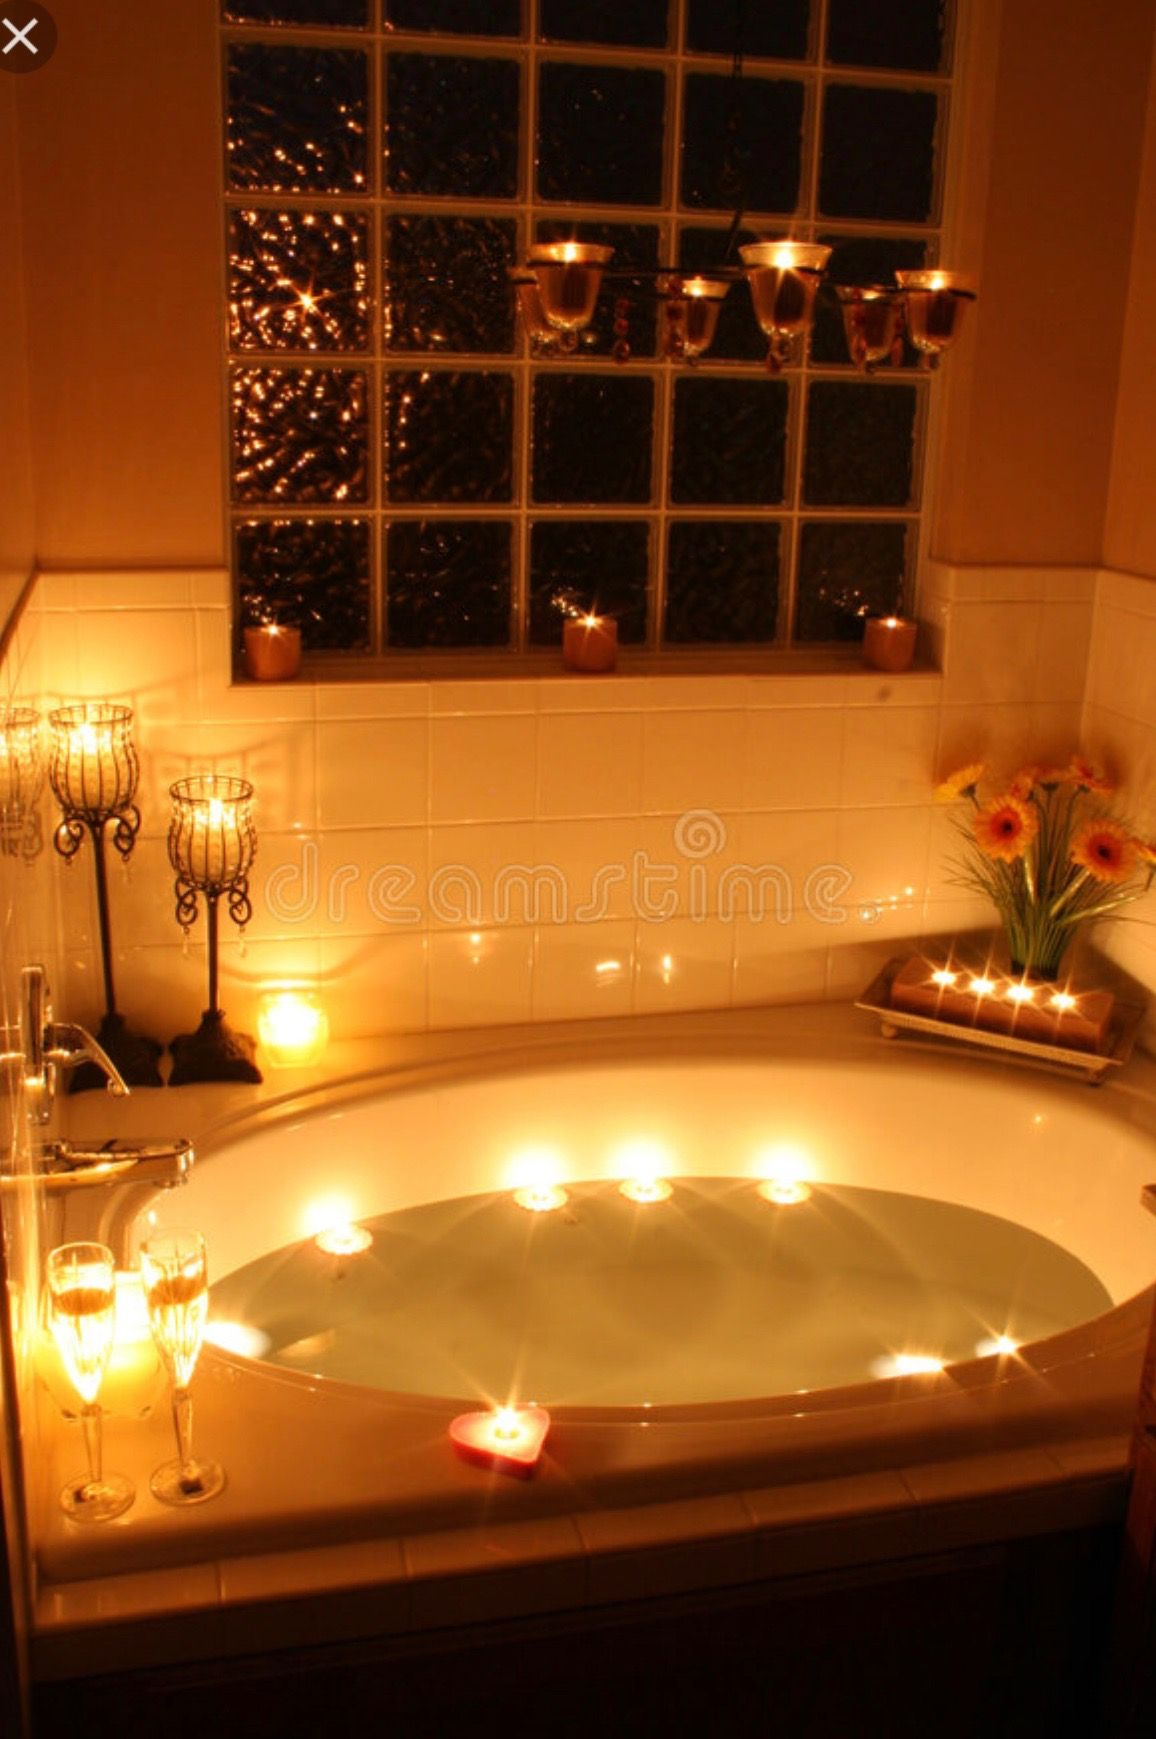 Pin by Chrissie Blackburn on CANDLES & BATH TIME   Candle ...